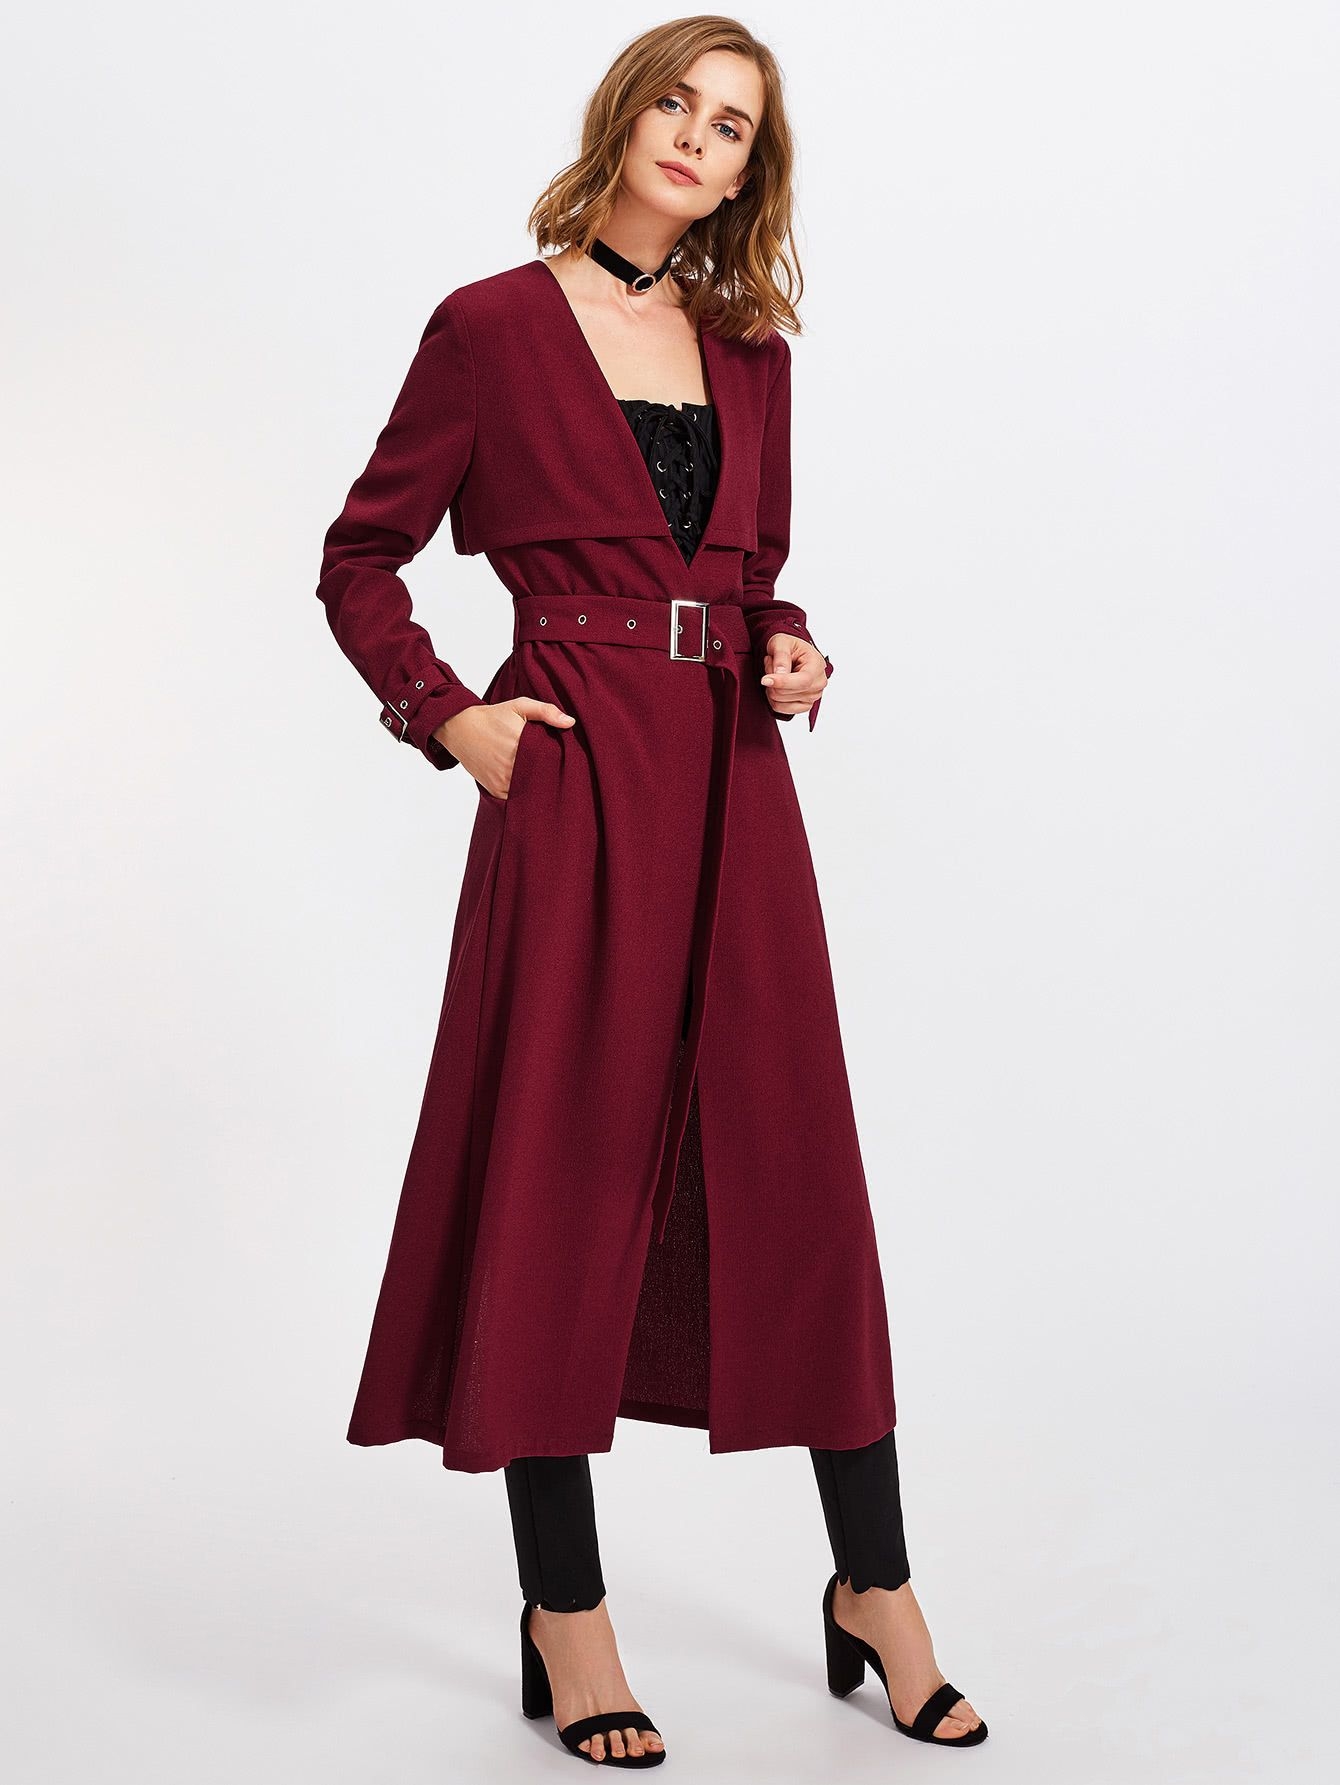 Shop Buckle Belted Waist And Cuff Layered Coat online SheIn offers